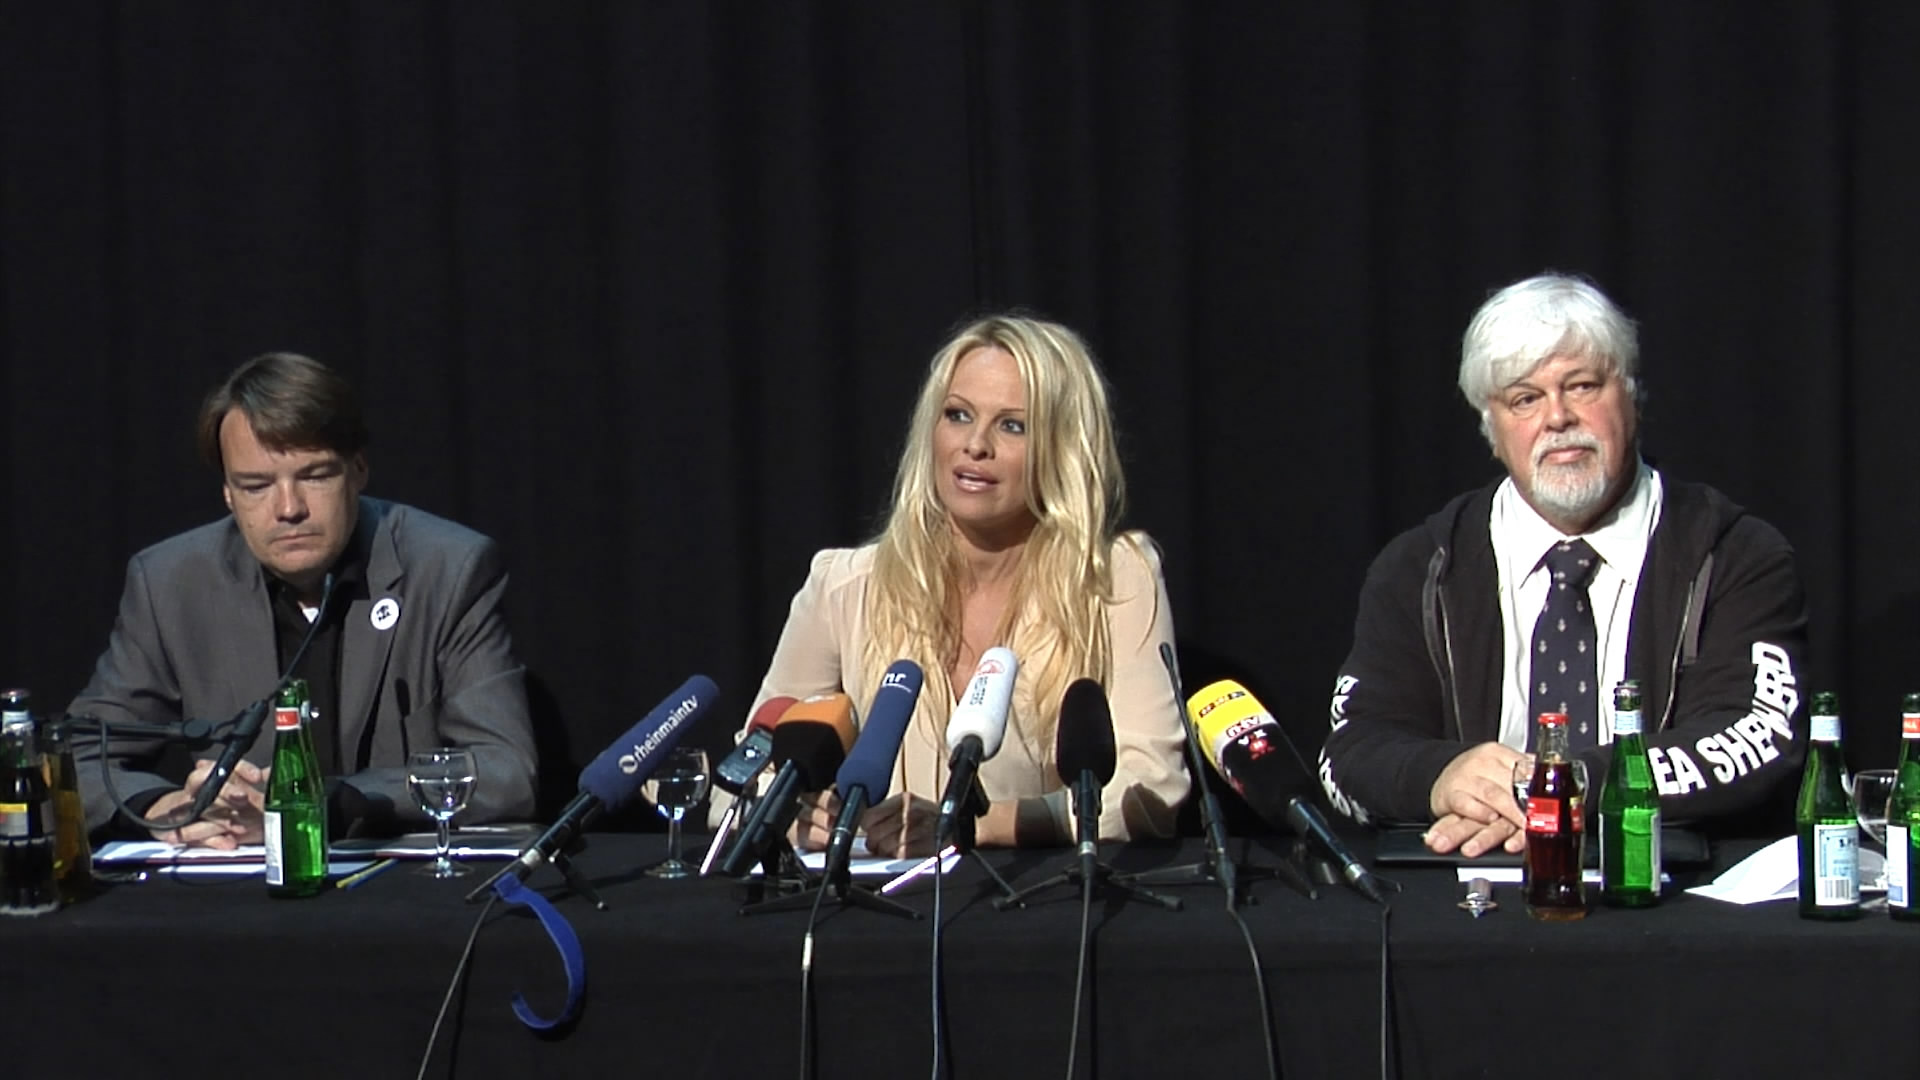 2012-06-13-Pamela-Anderson-press-conference.mp4_snapshot_00.24_2012.06.16_09.26.44